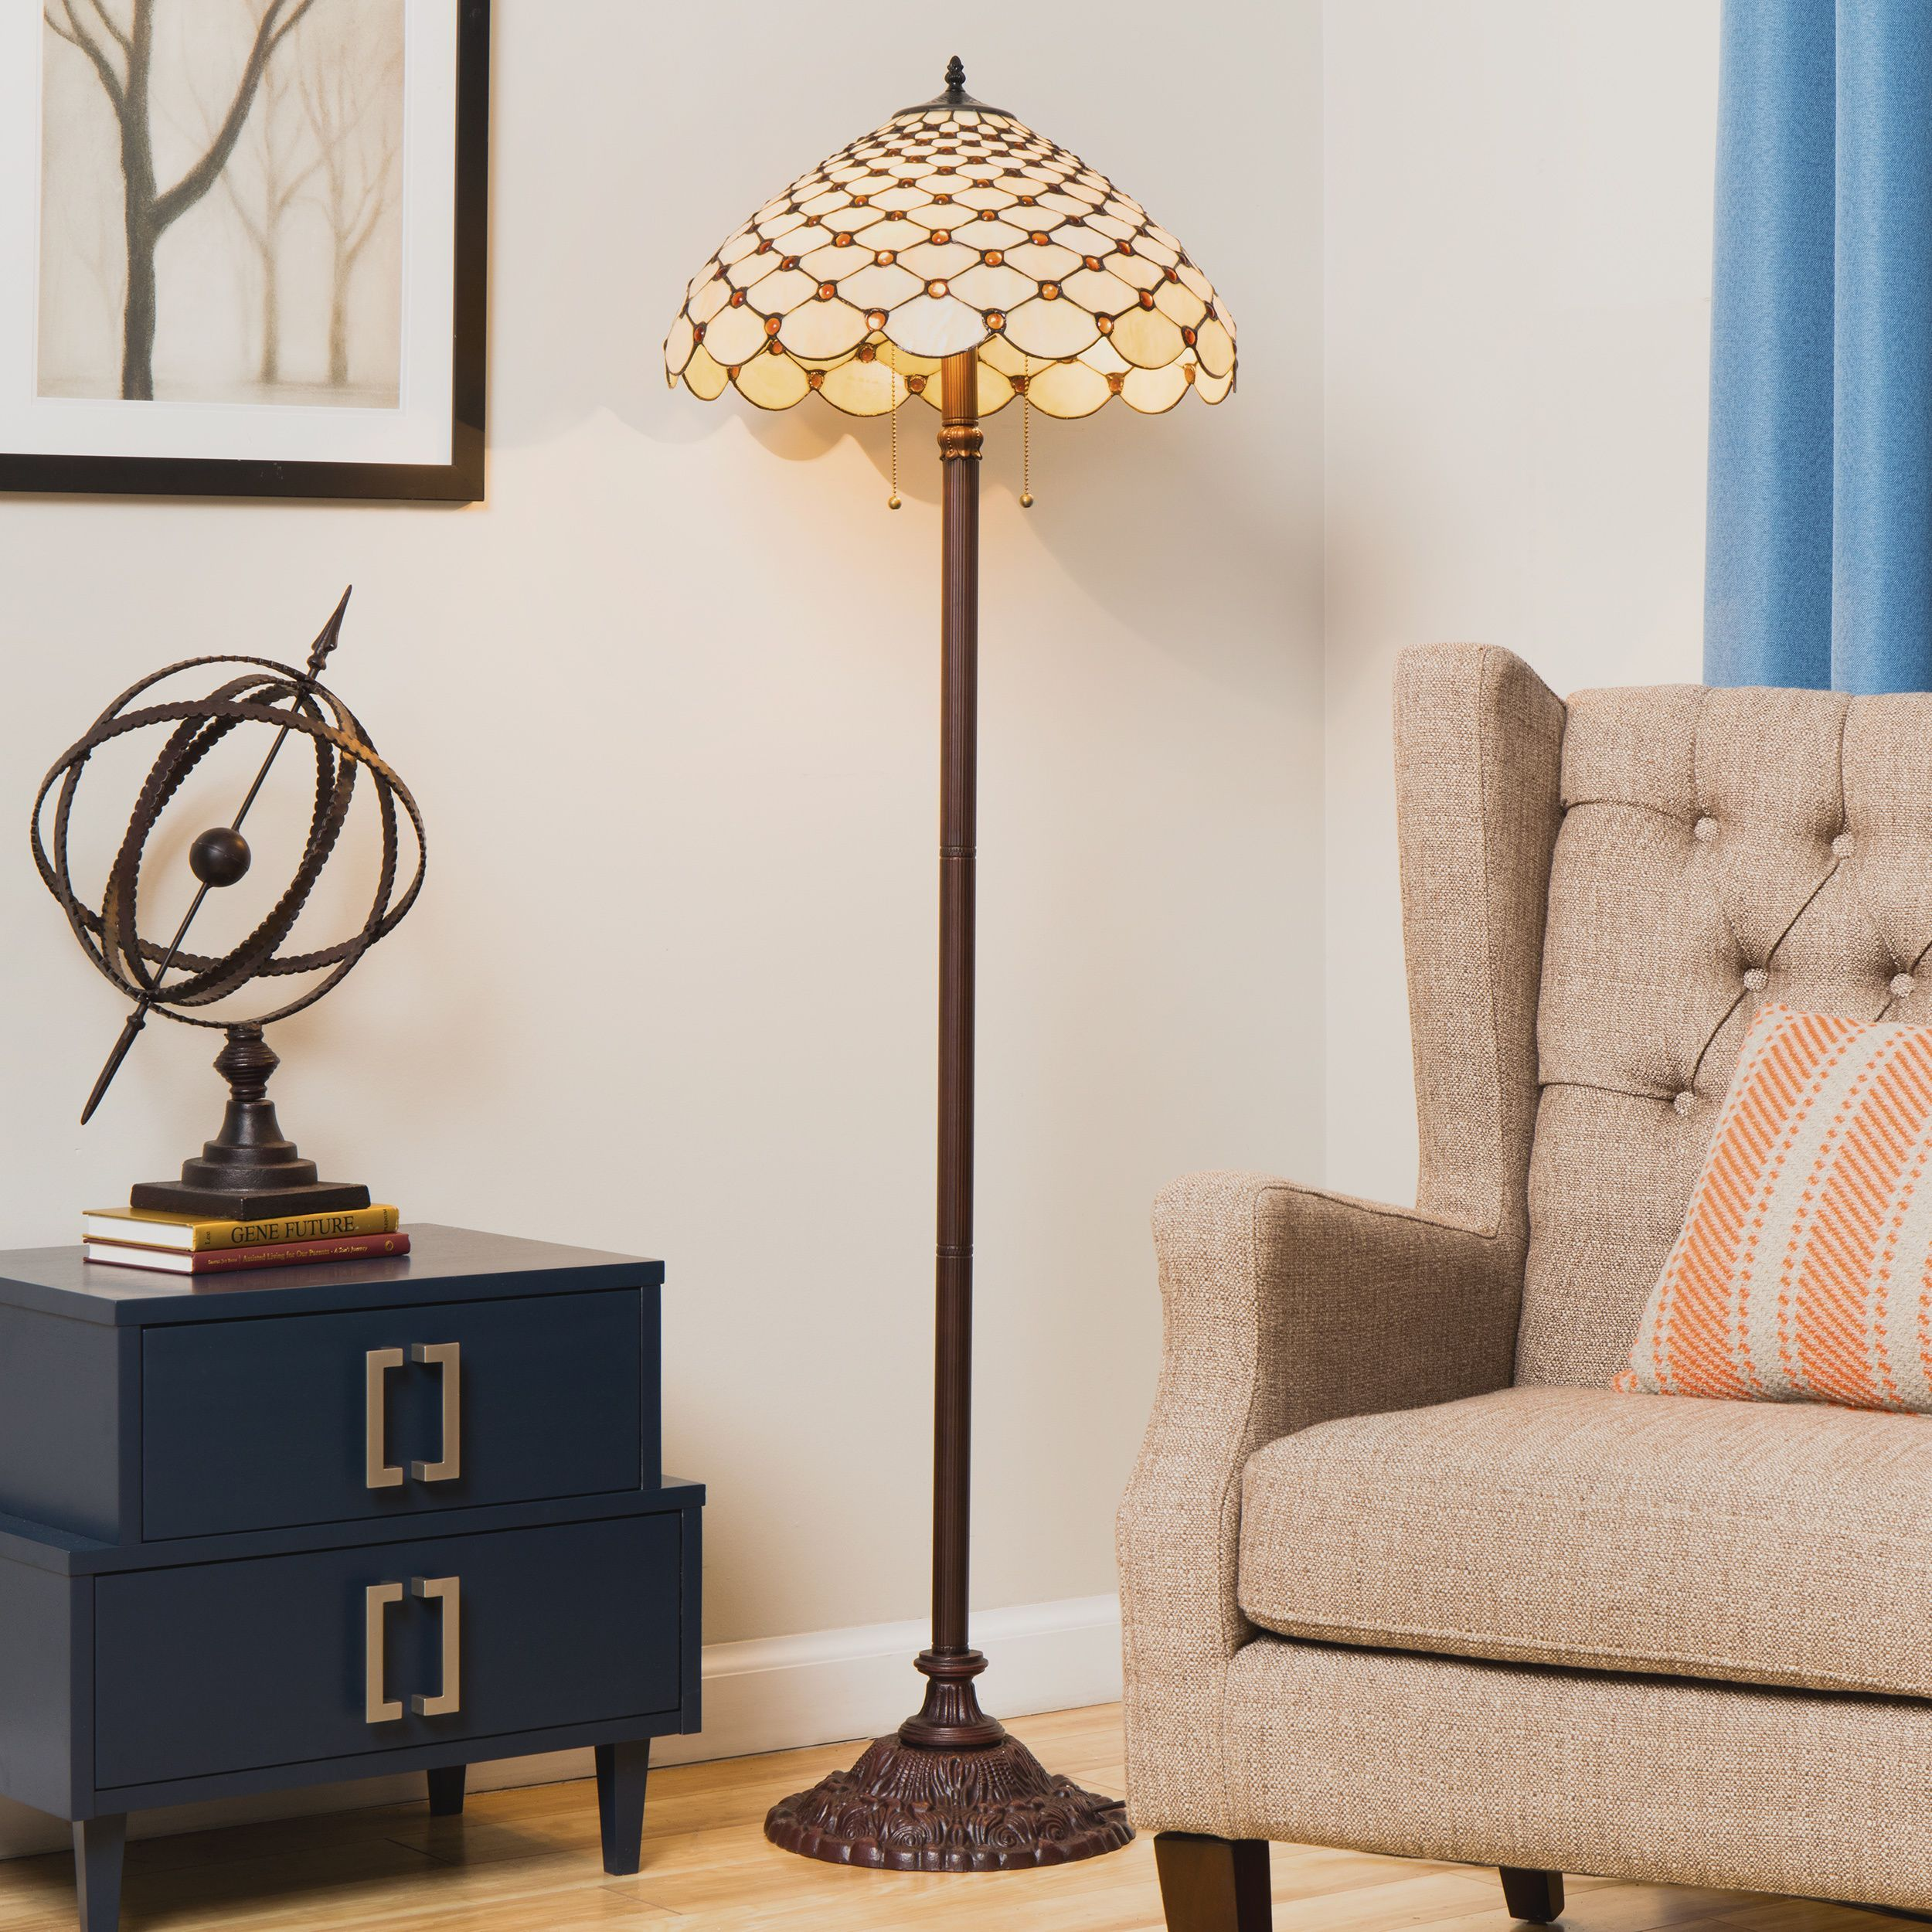 Add an eye catching accent to your indoor living space with this